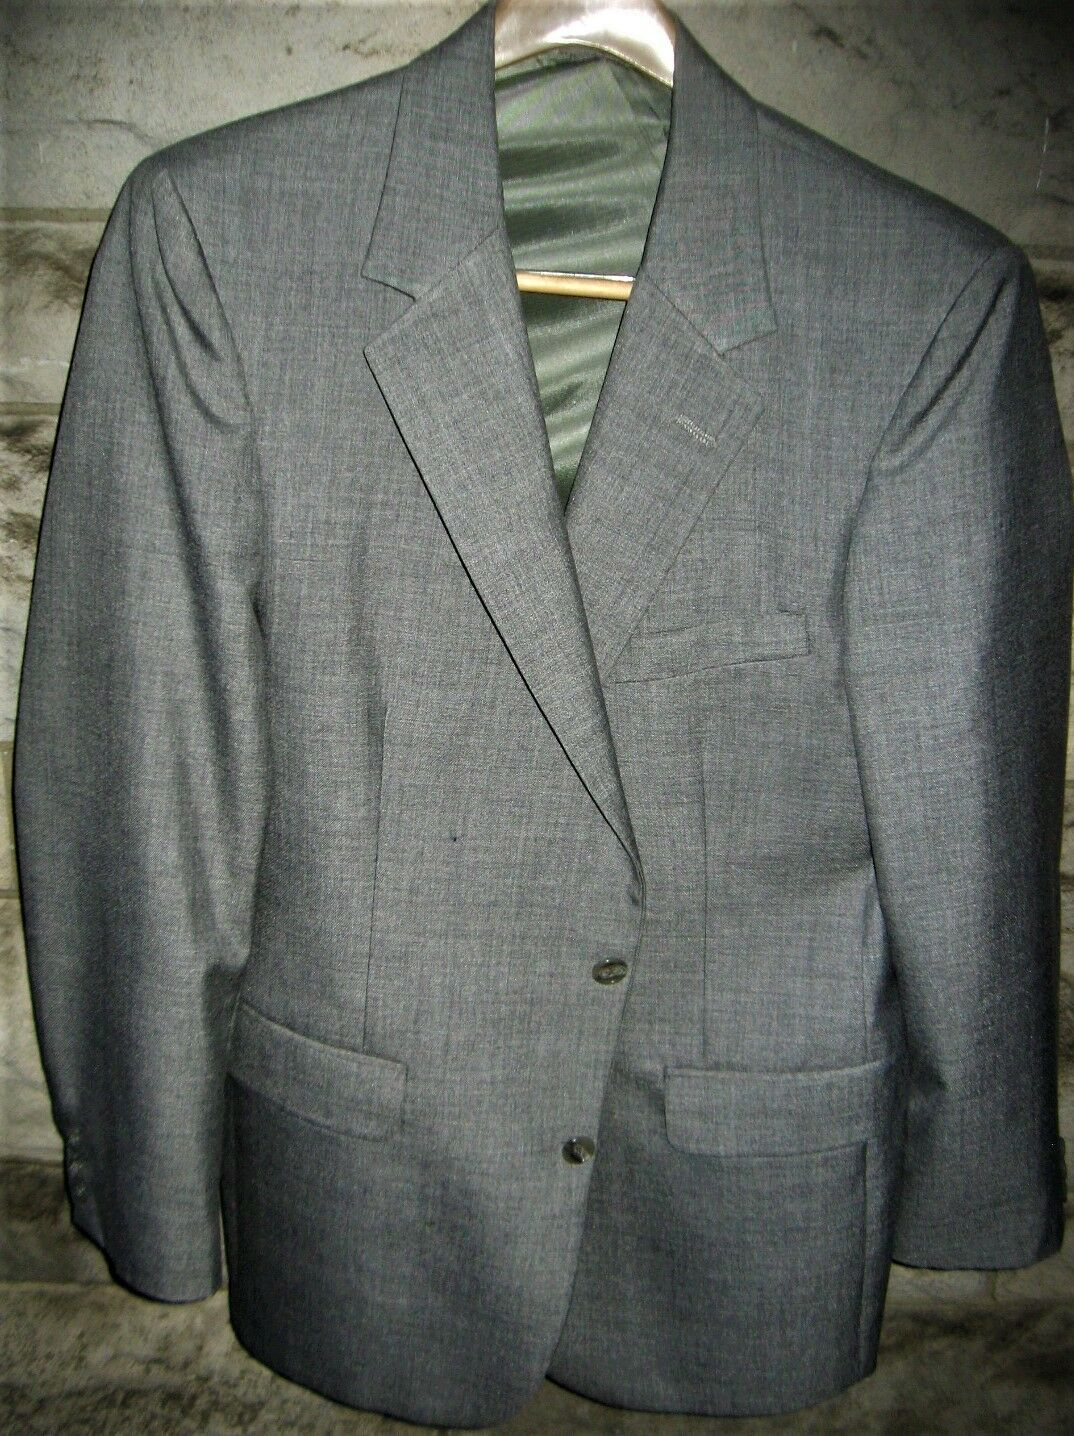 Vintage 70s Botany 500 men's coat, excellent condition 40